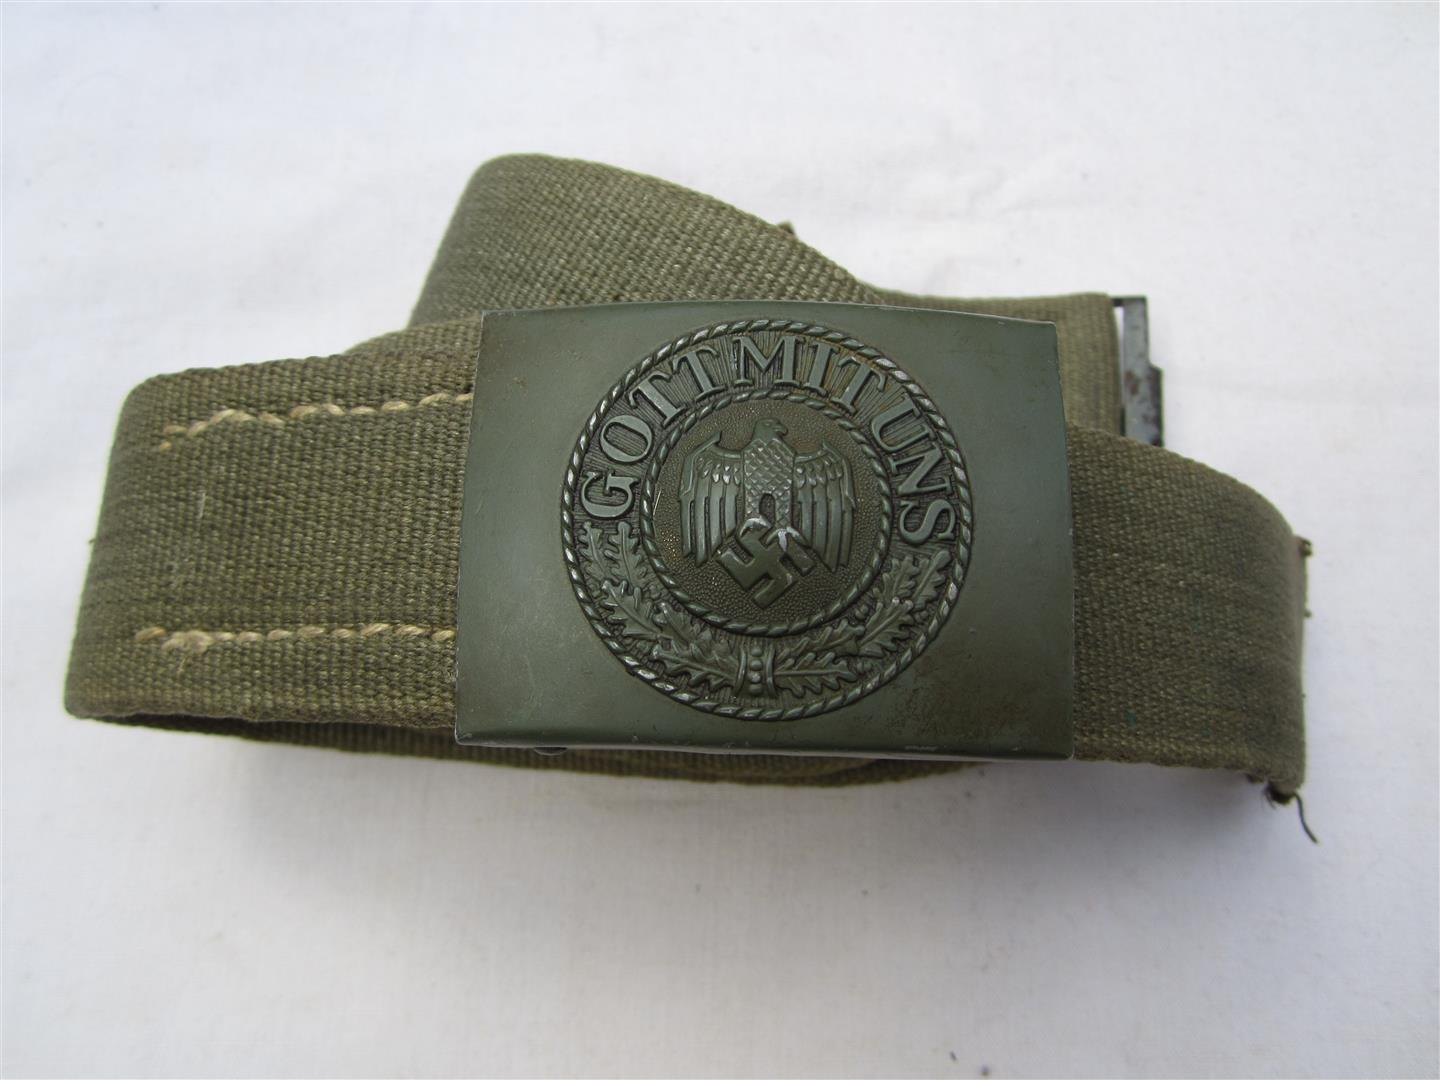 WW2 DAK Belt & Buckle